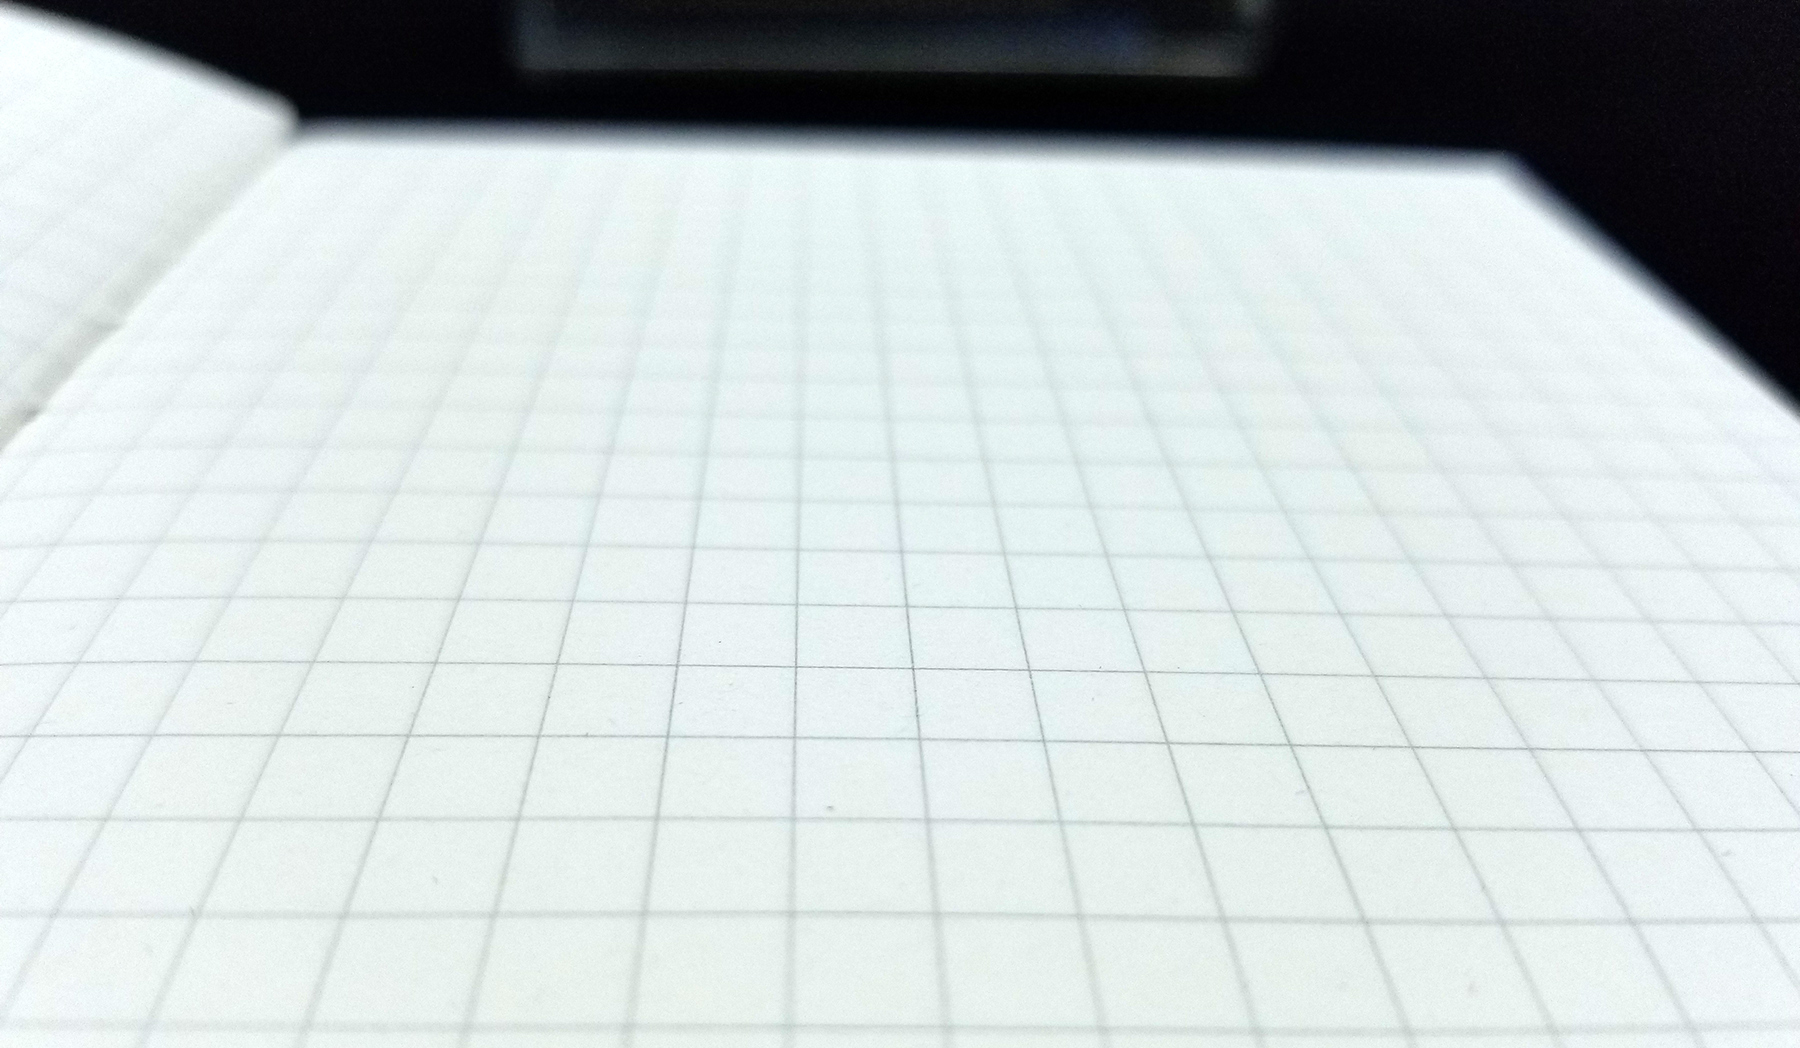 muji a6 grid notebook review